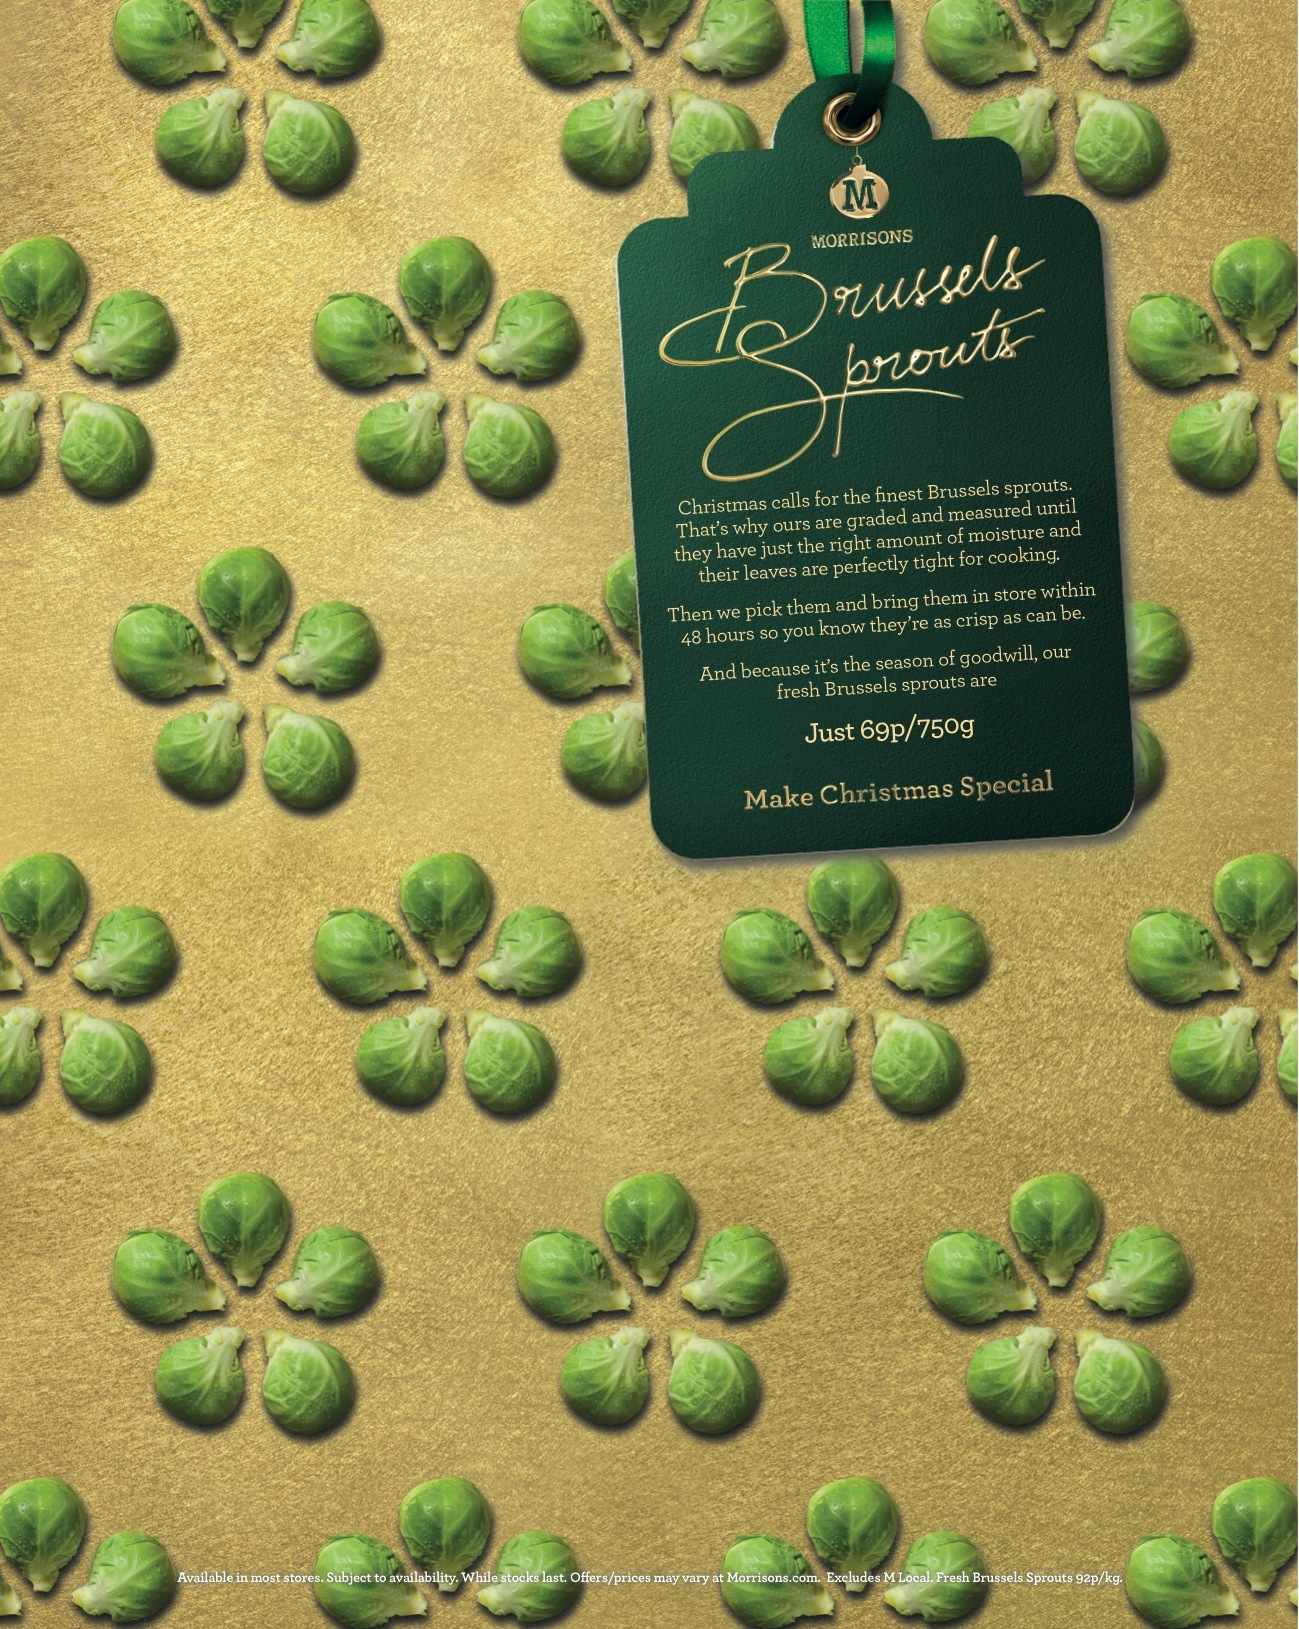 morrisons_wrapping_sprouts_print_aotw_aotw